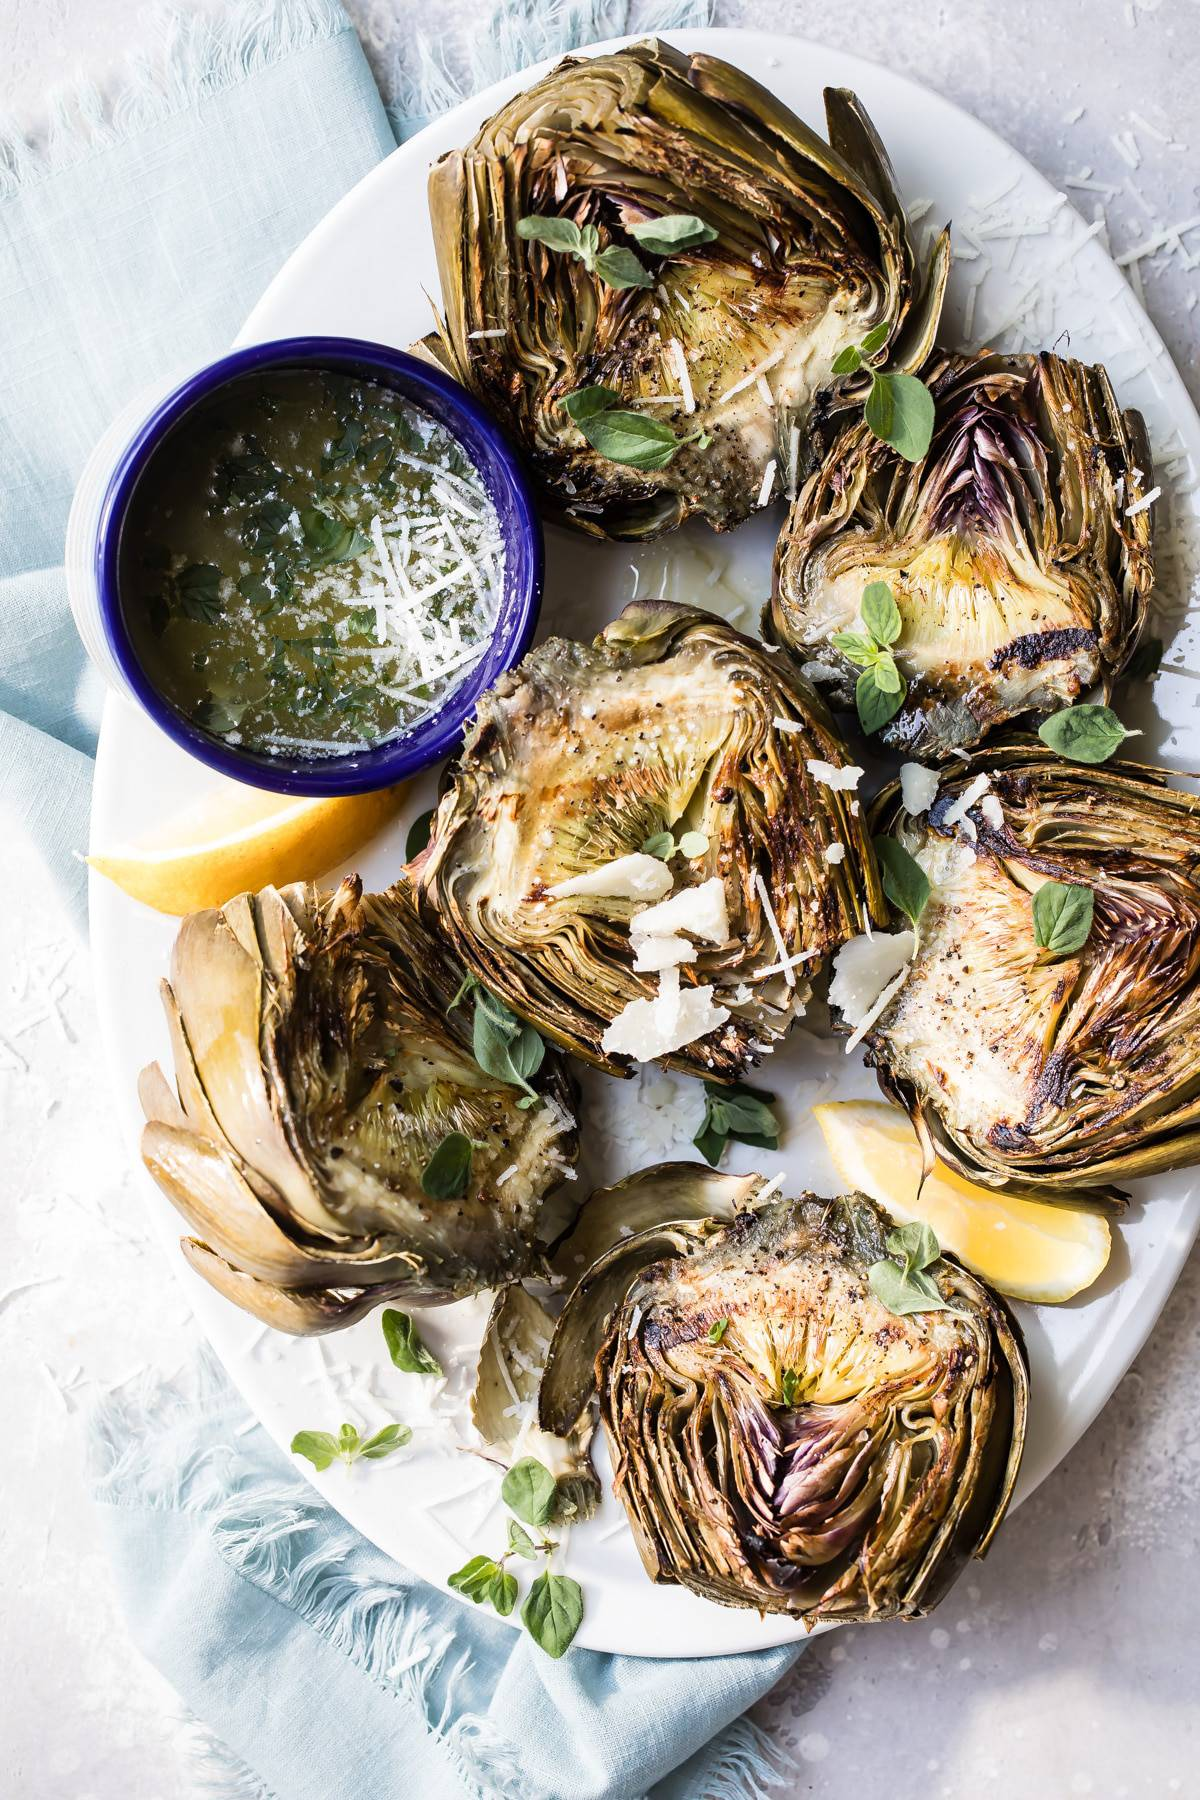 Grilled Artichokes with Garlic Parmesan Butter